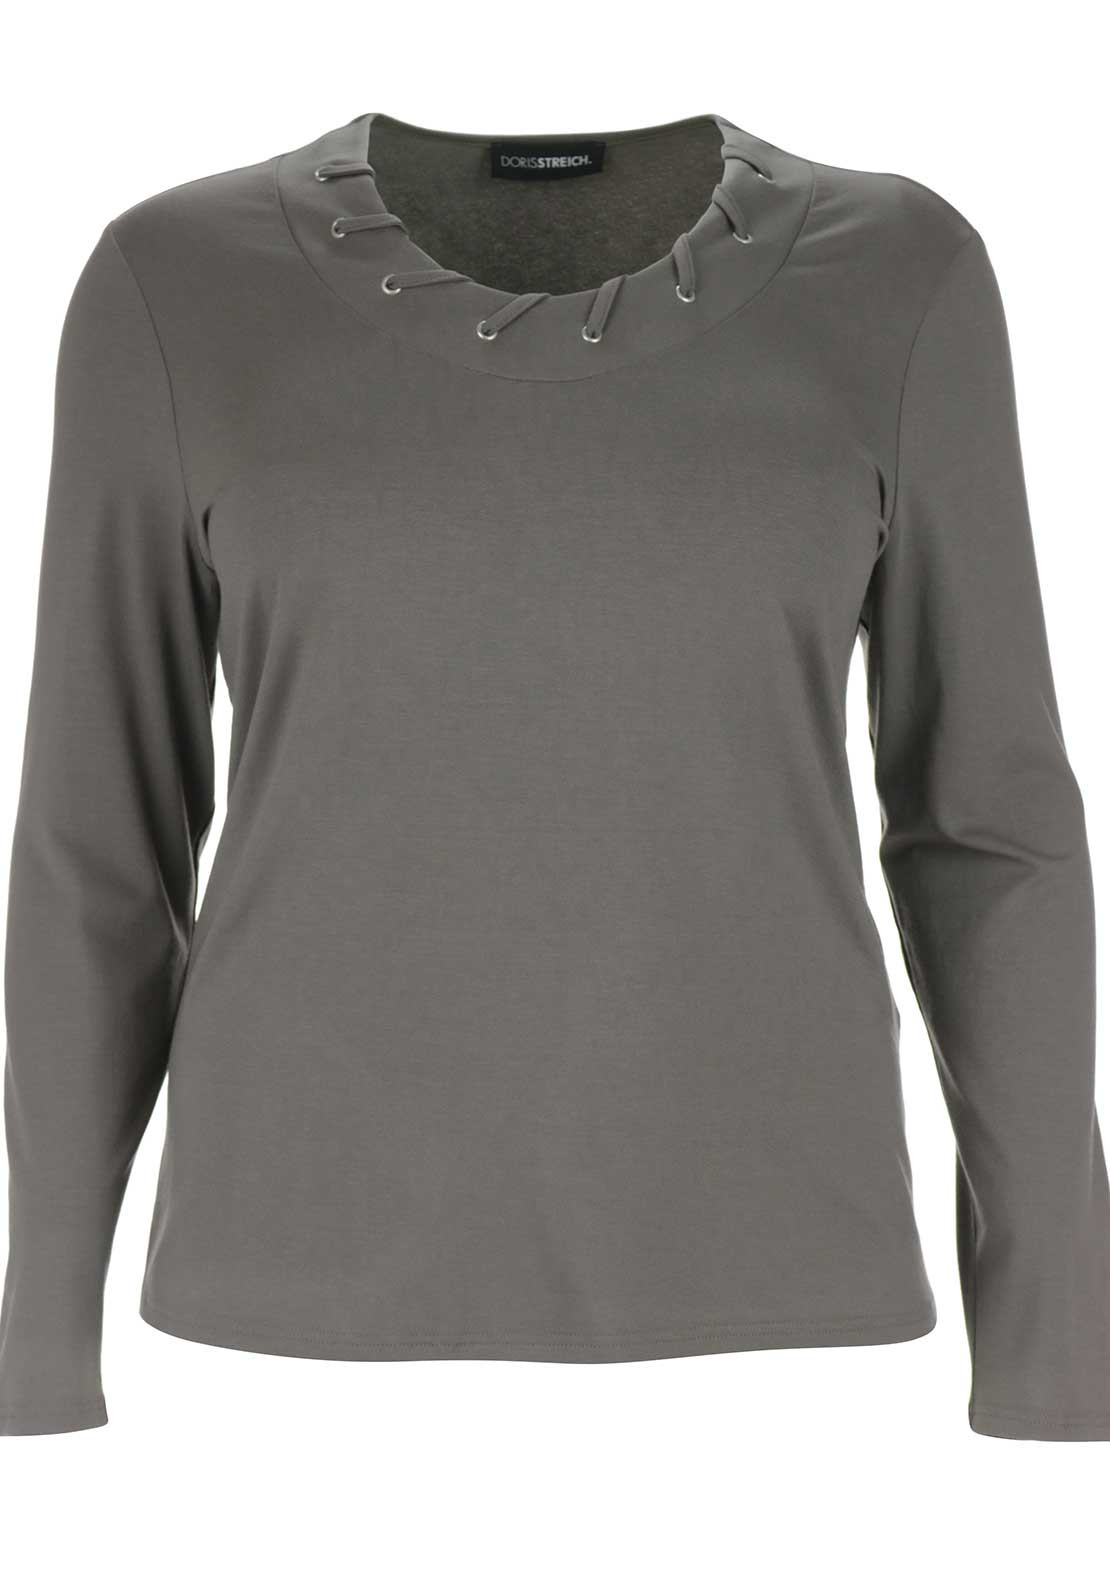 Doris Streich Long Sleeve Top, Taupe